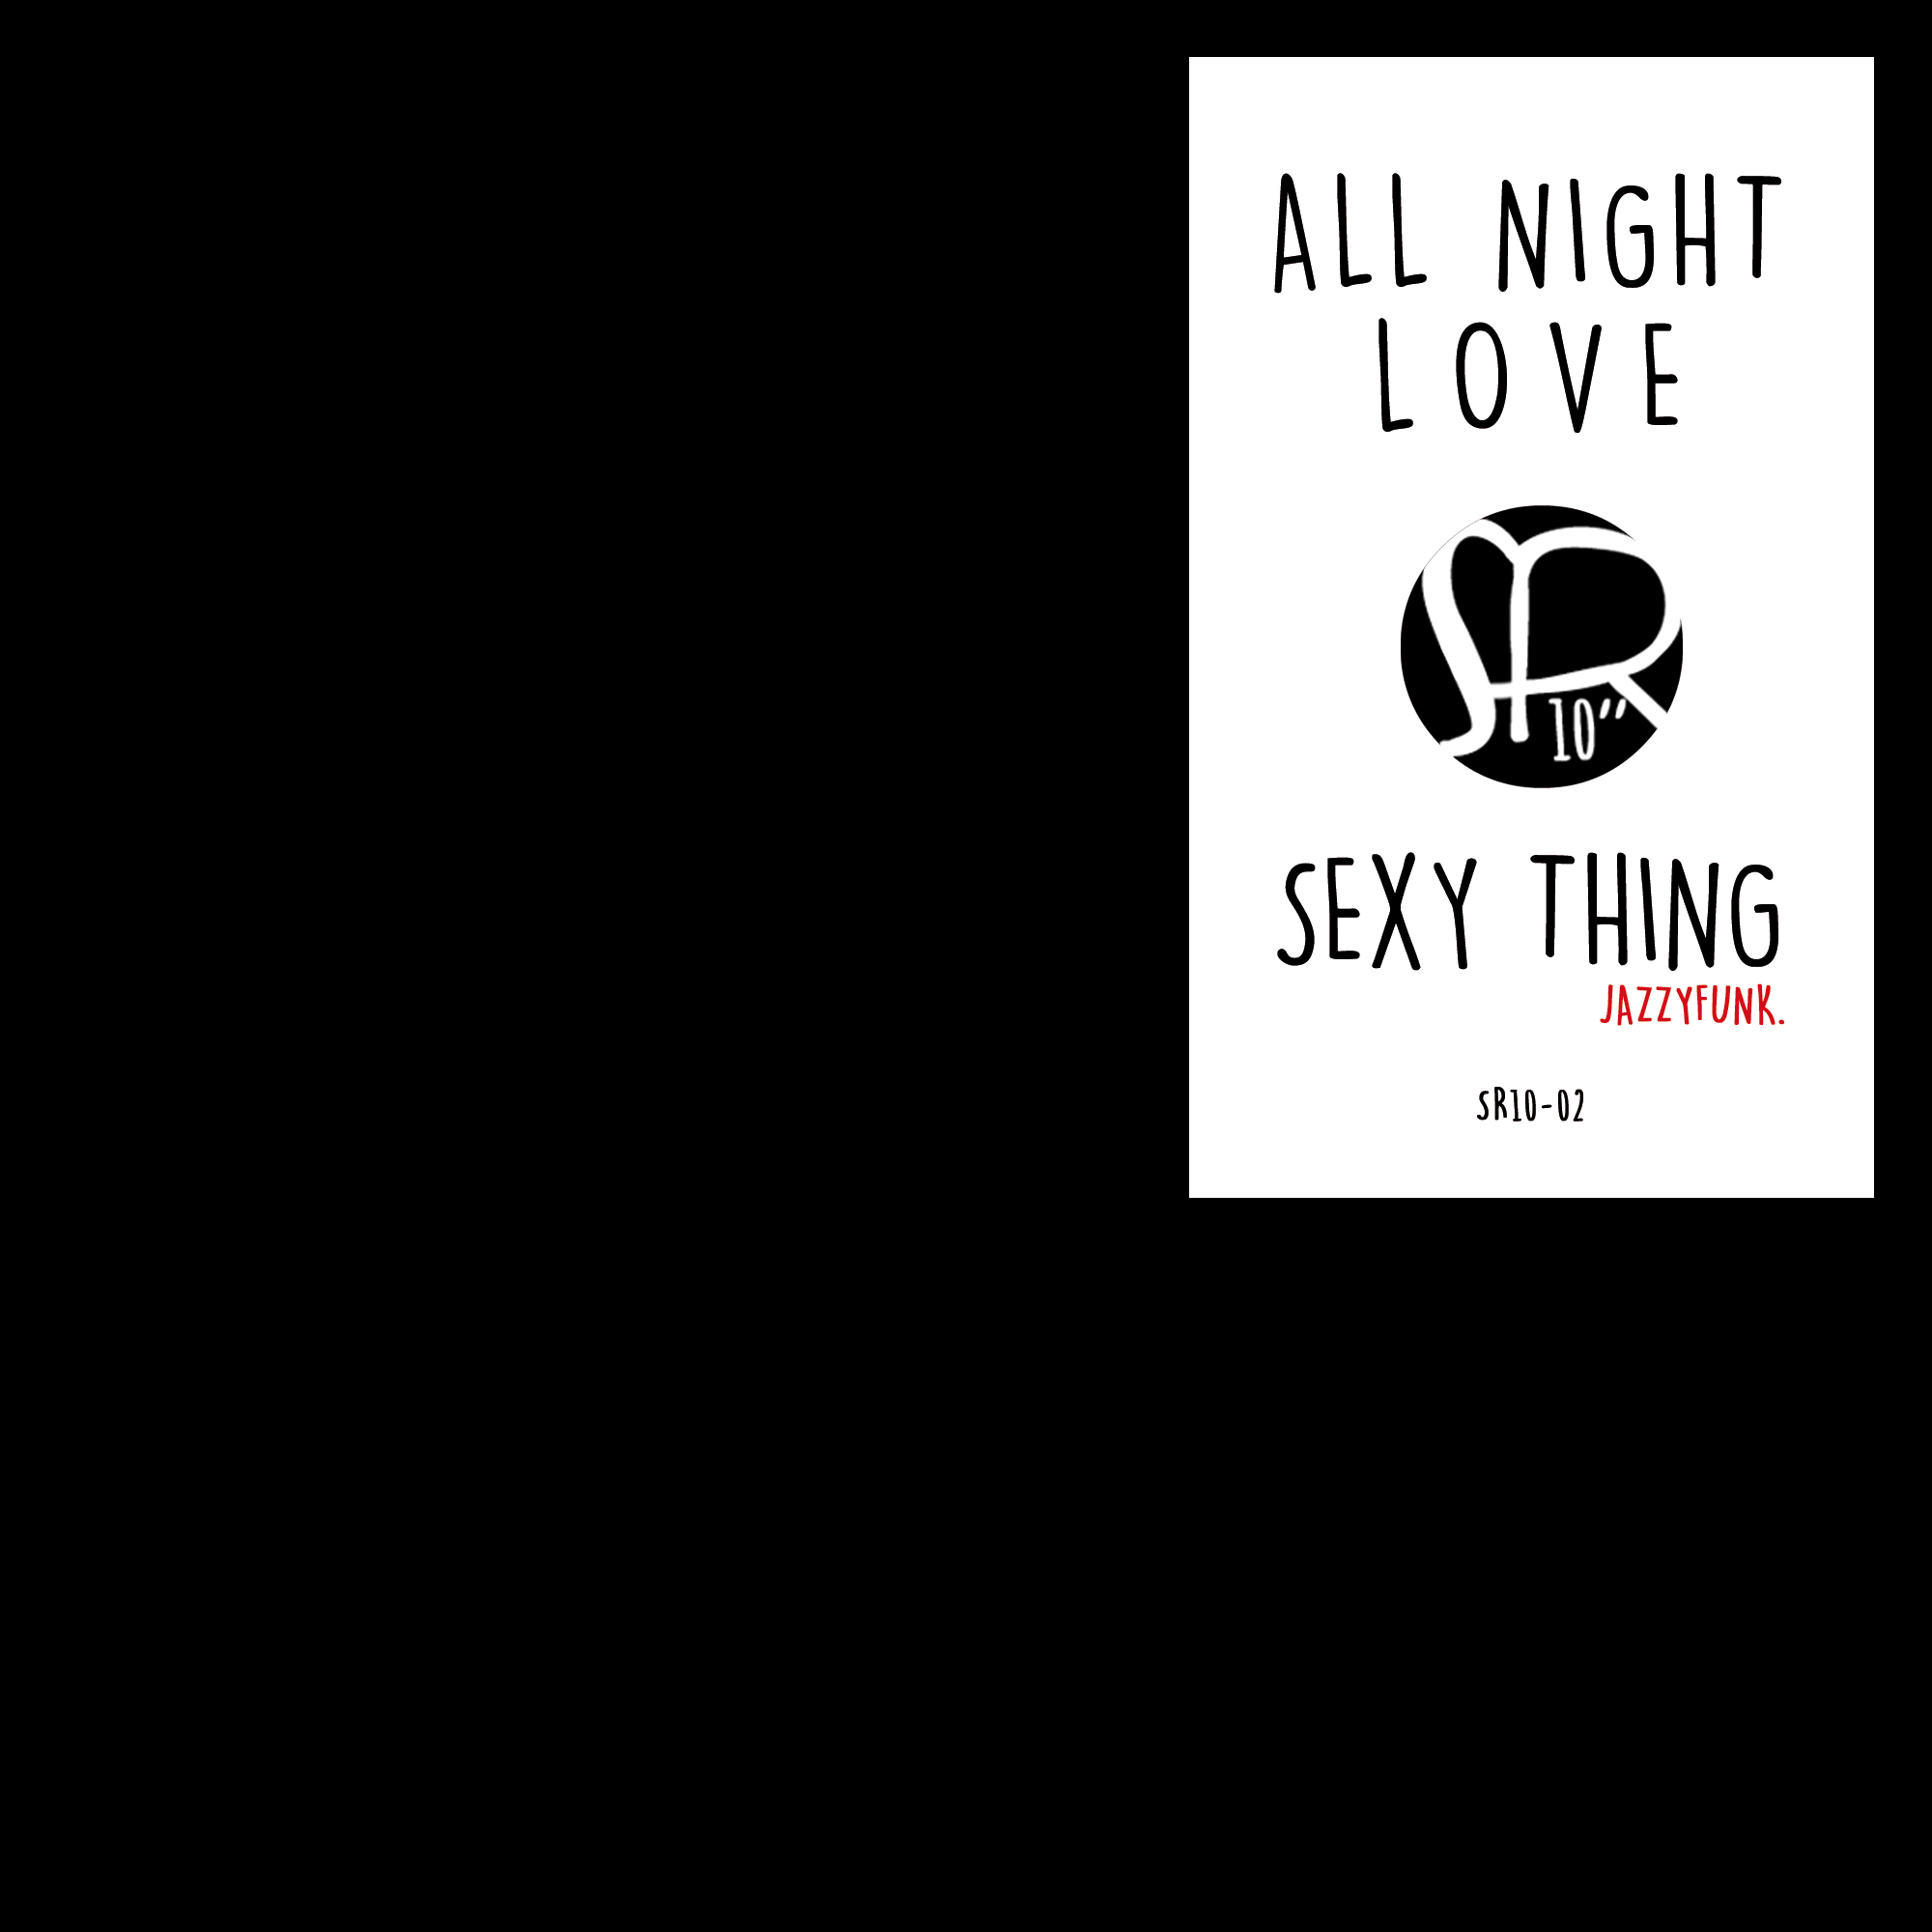 [SR10] All Night Love / Sexy Thing (VINYL ONLY)